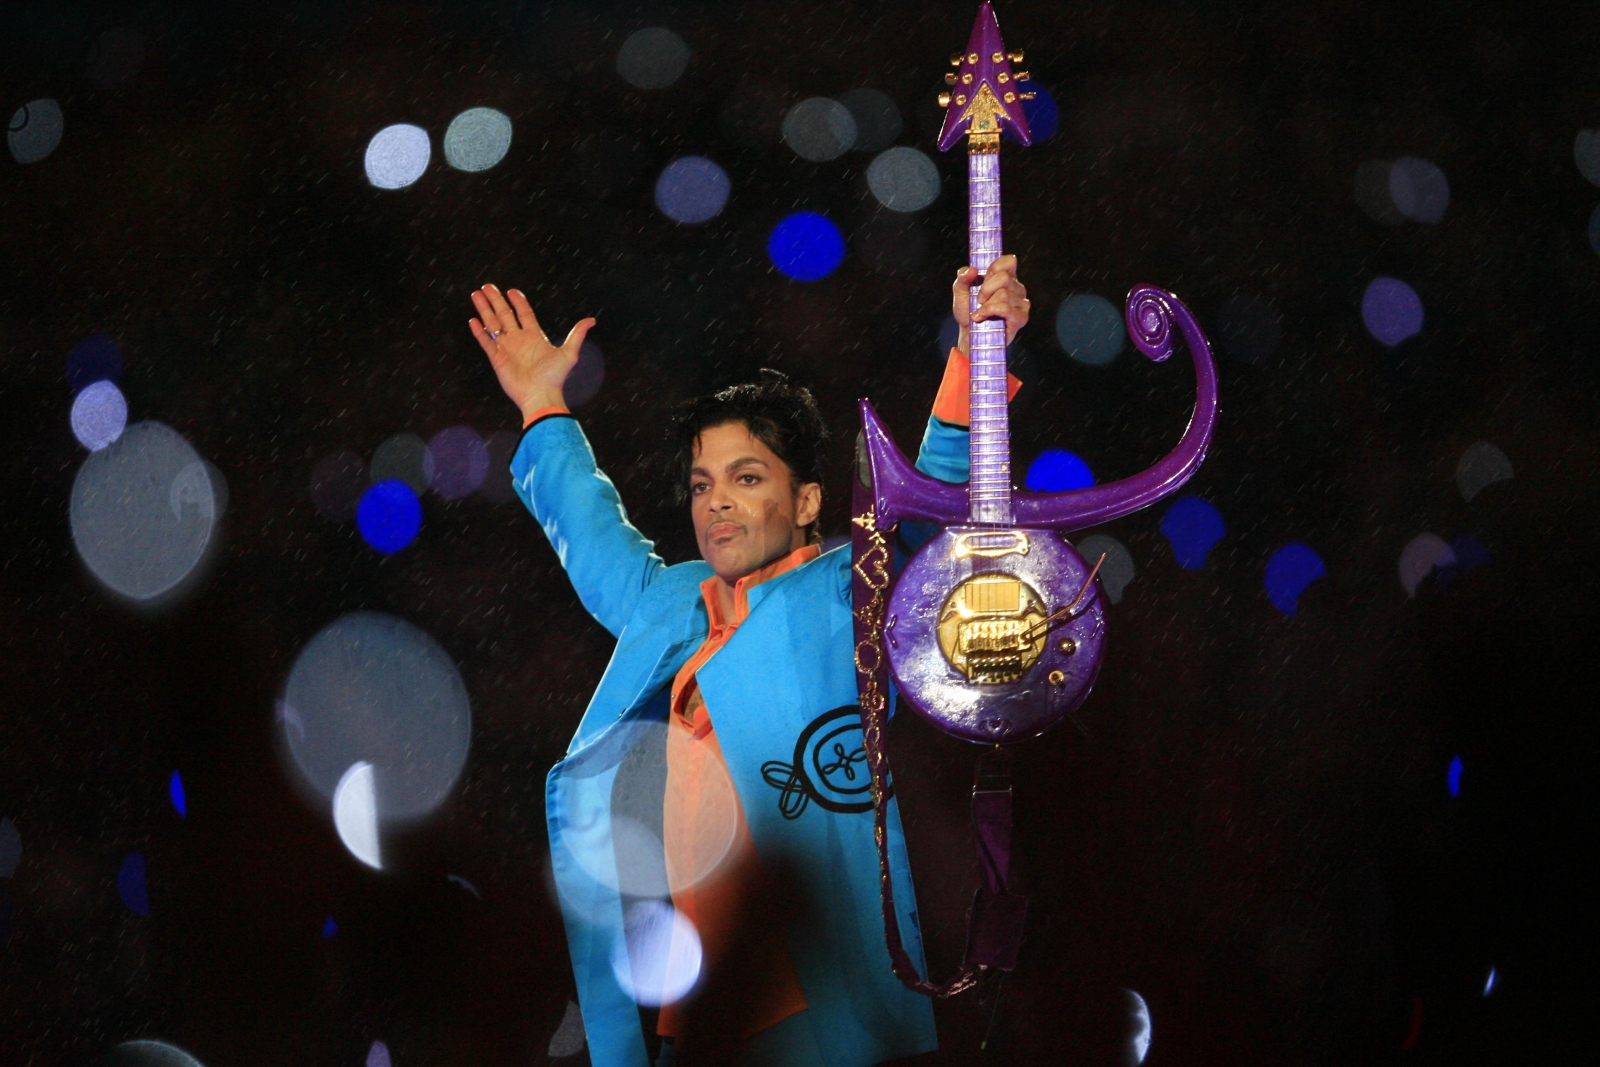 Prince's Superbowl performance 2007